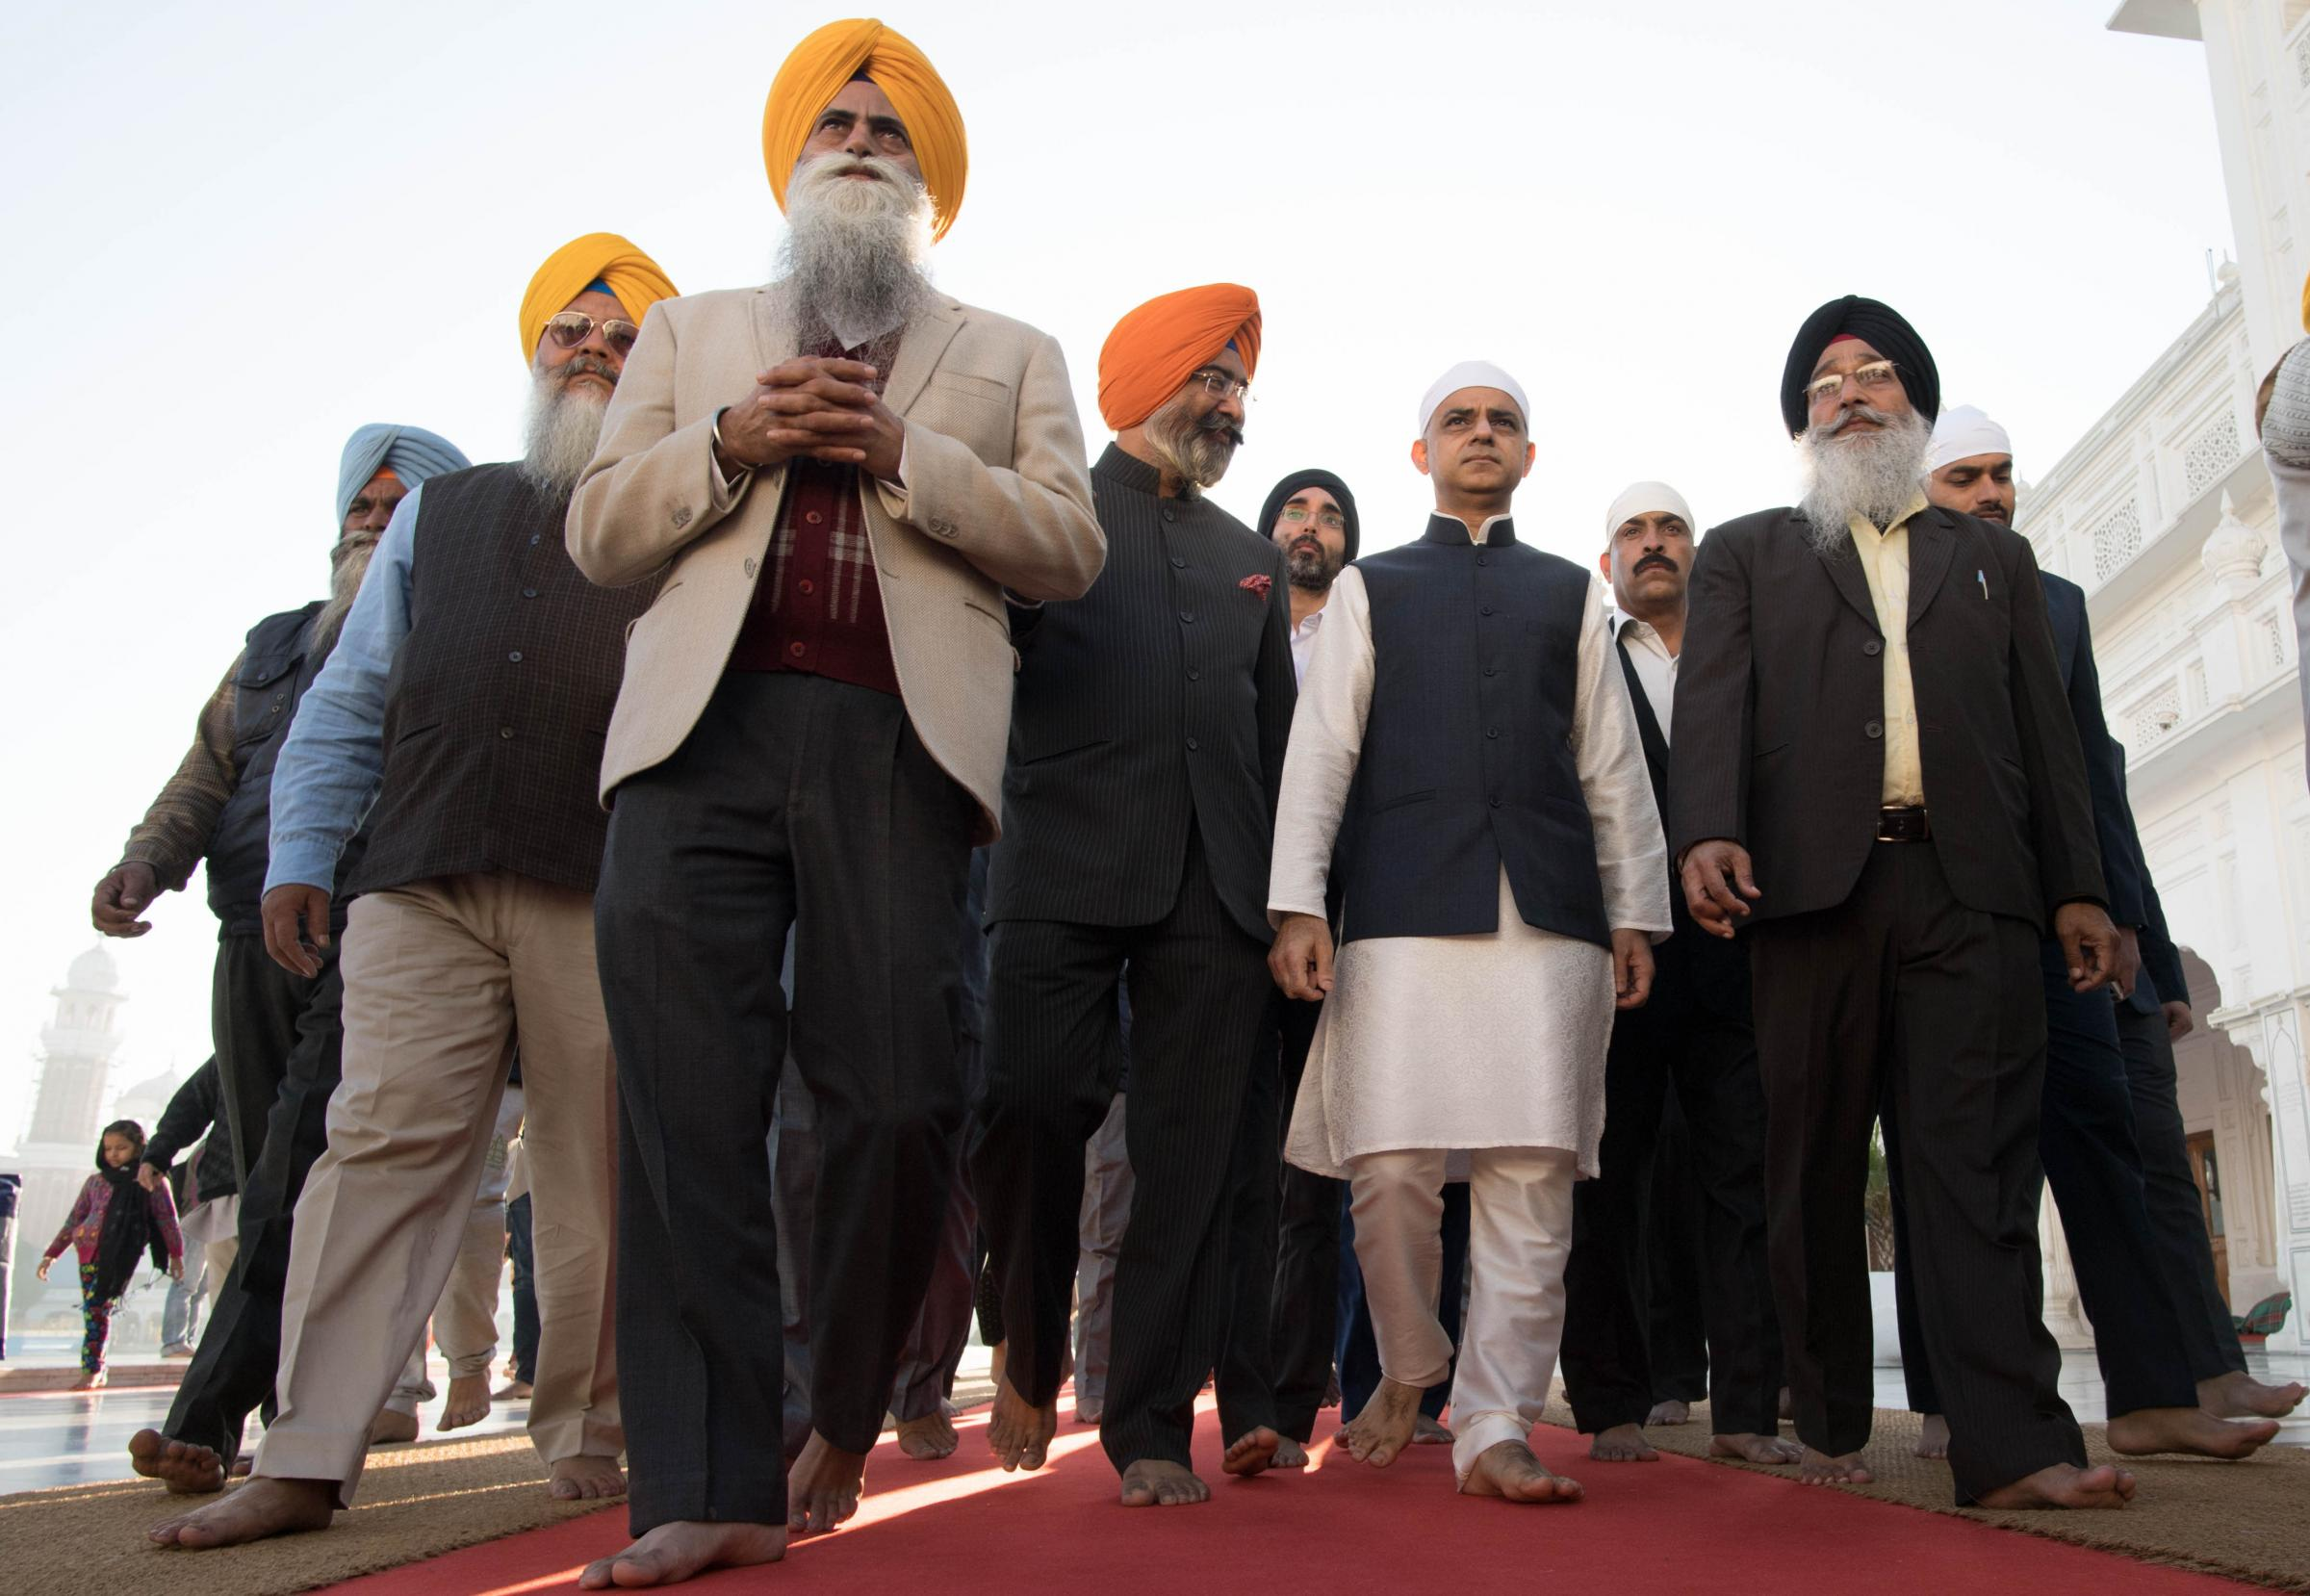 In Amritsar, London Mayor says time for British to apologise for Jallianwala